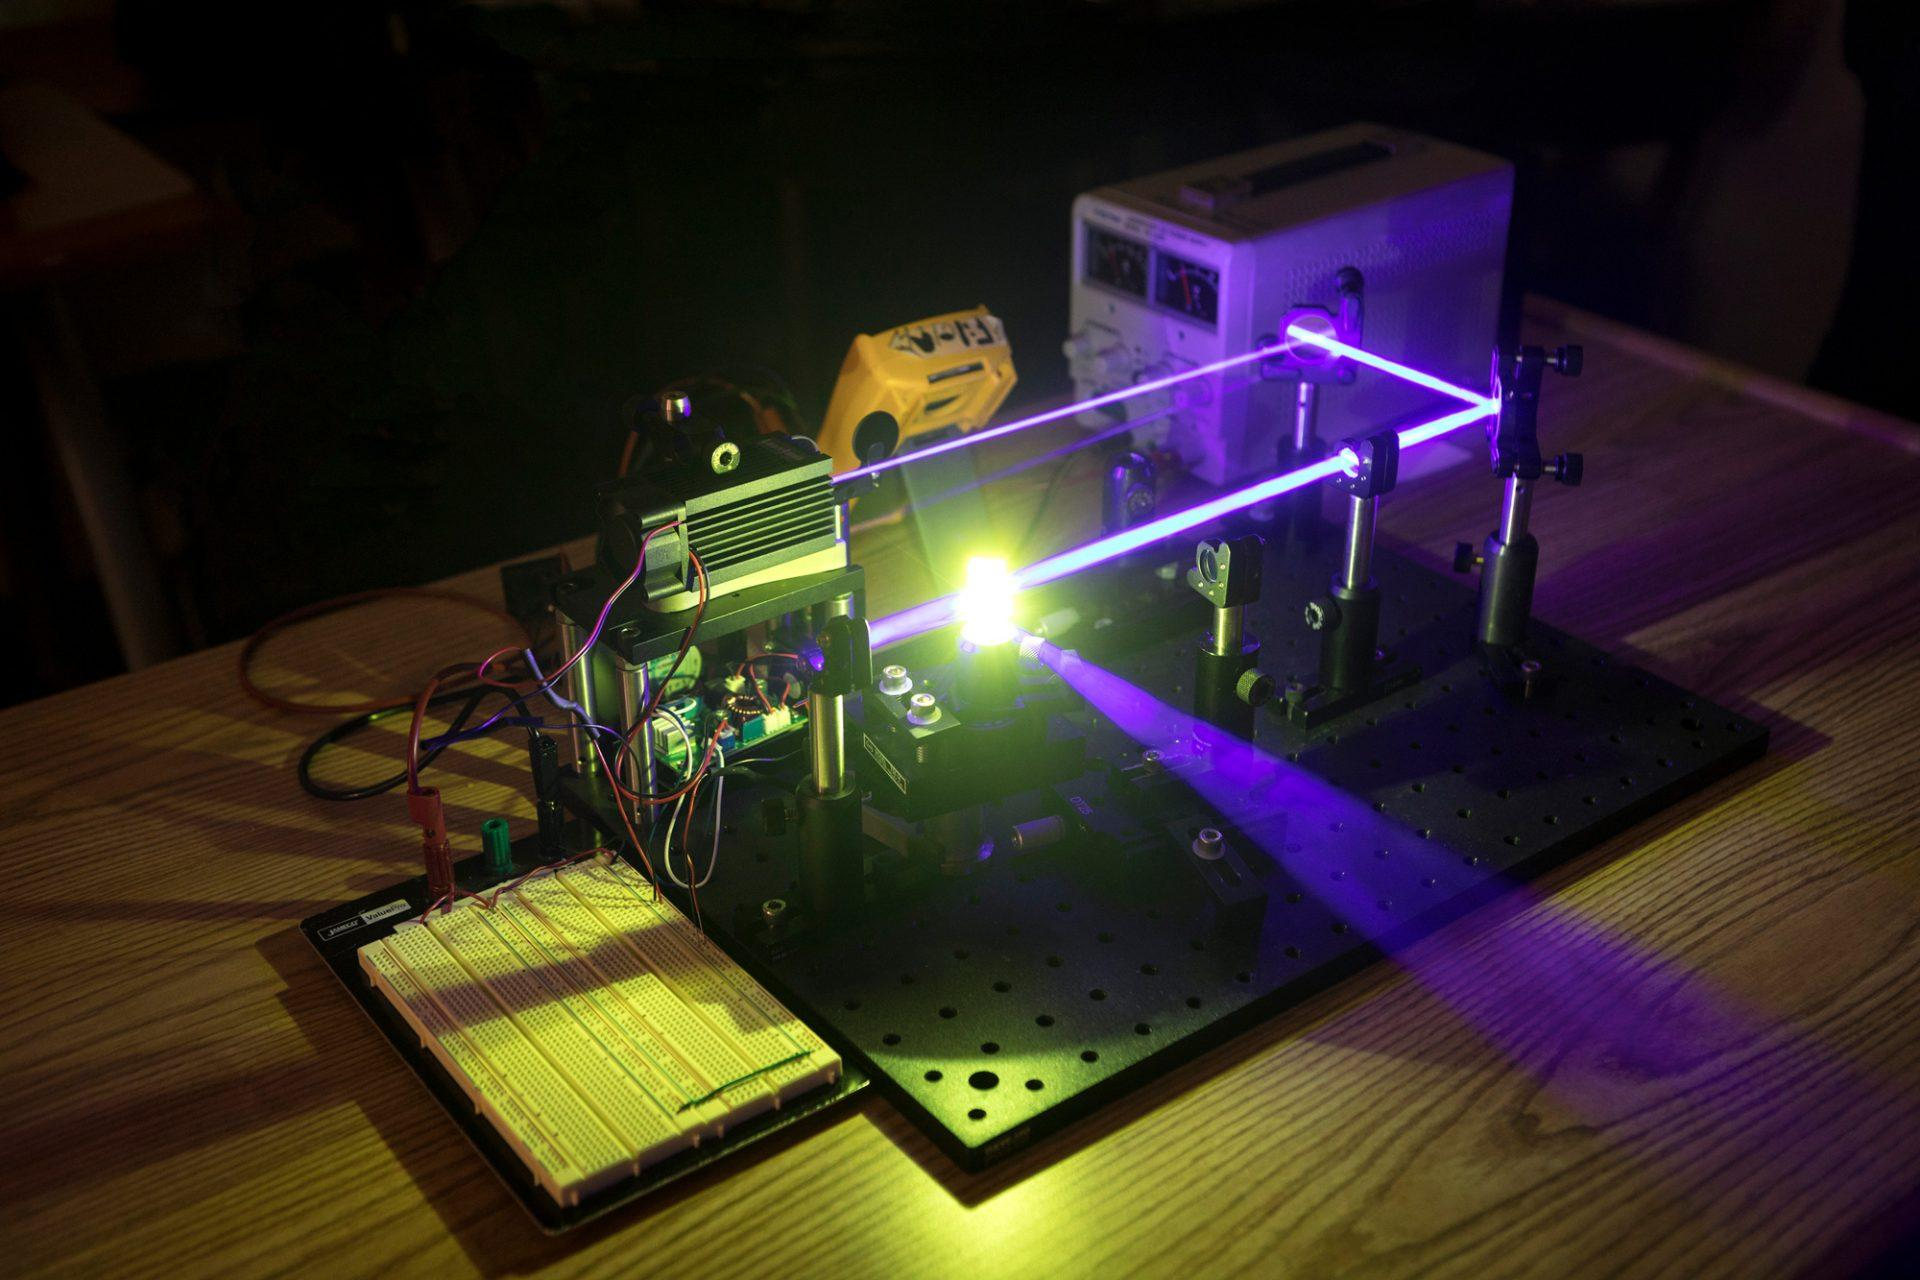 The prototype for the edible laser project, developed by App State professor Lauren Woods and undergraduate physics students Jack Griffin and Jose Salazar.